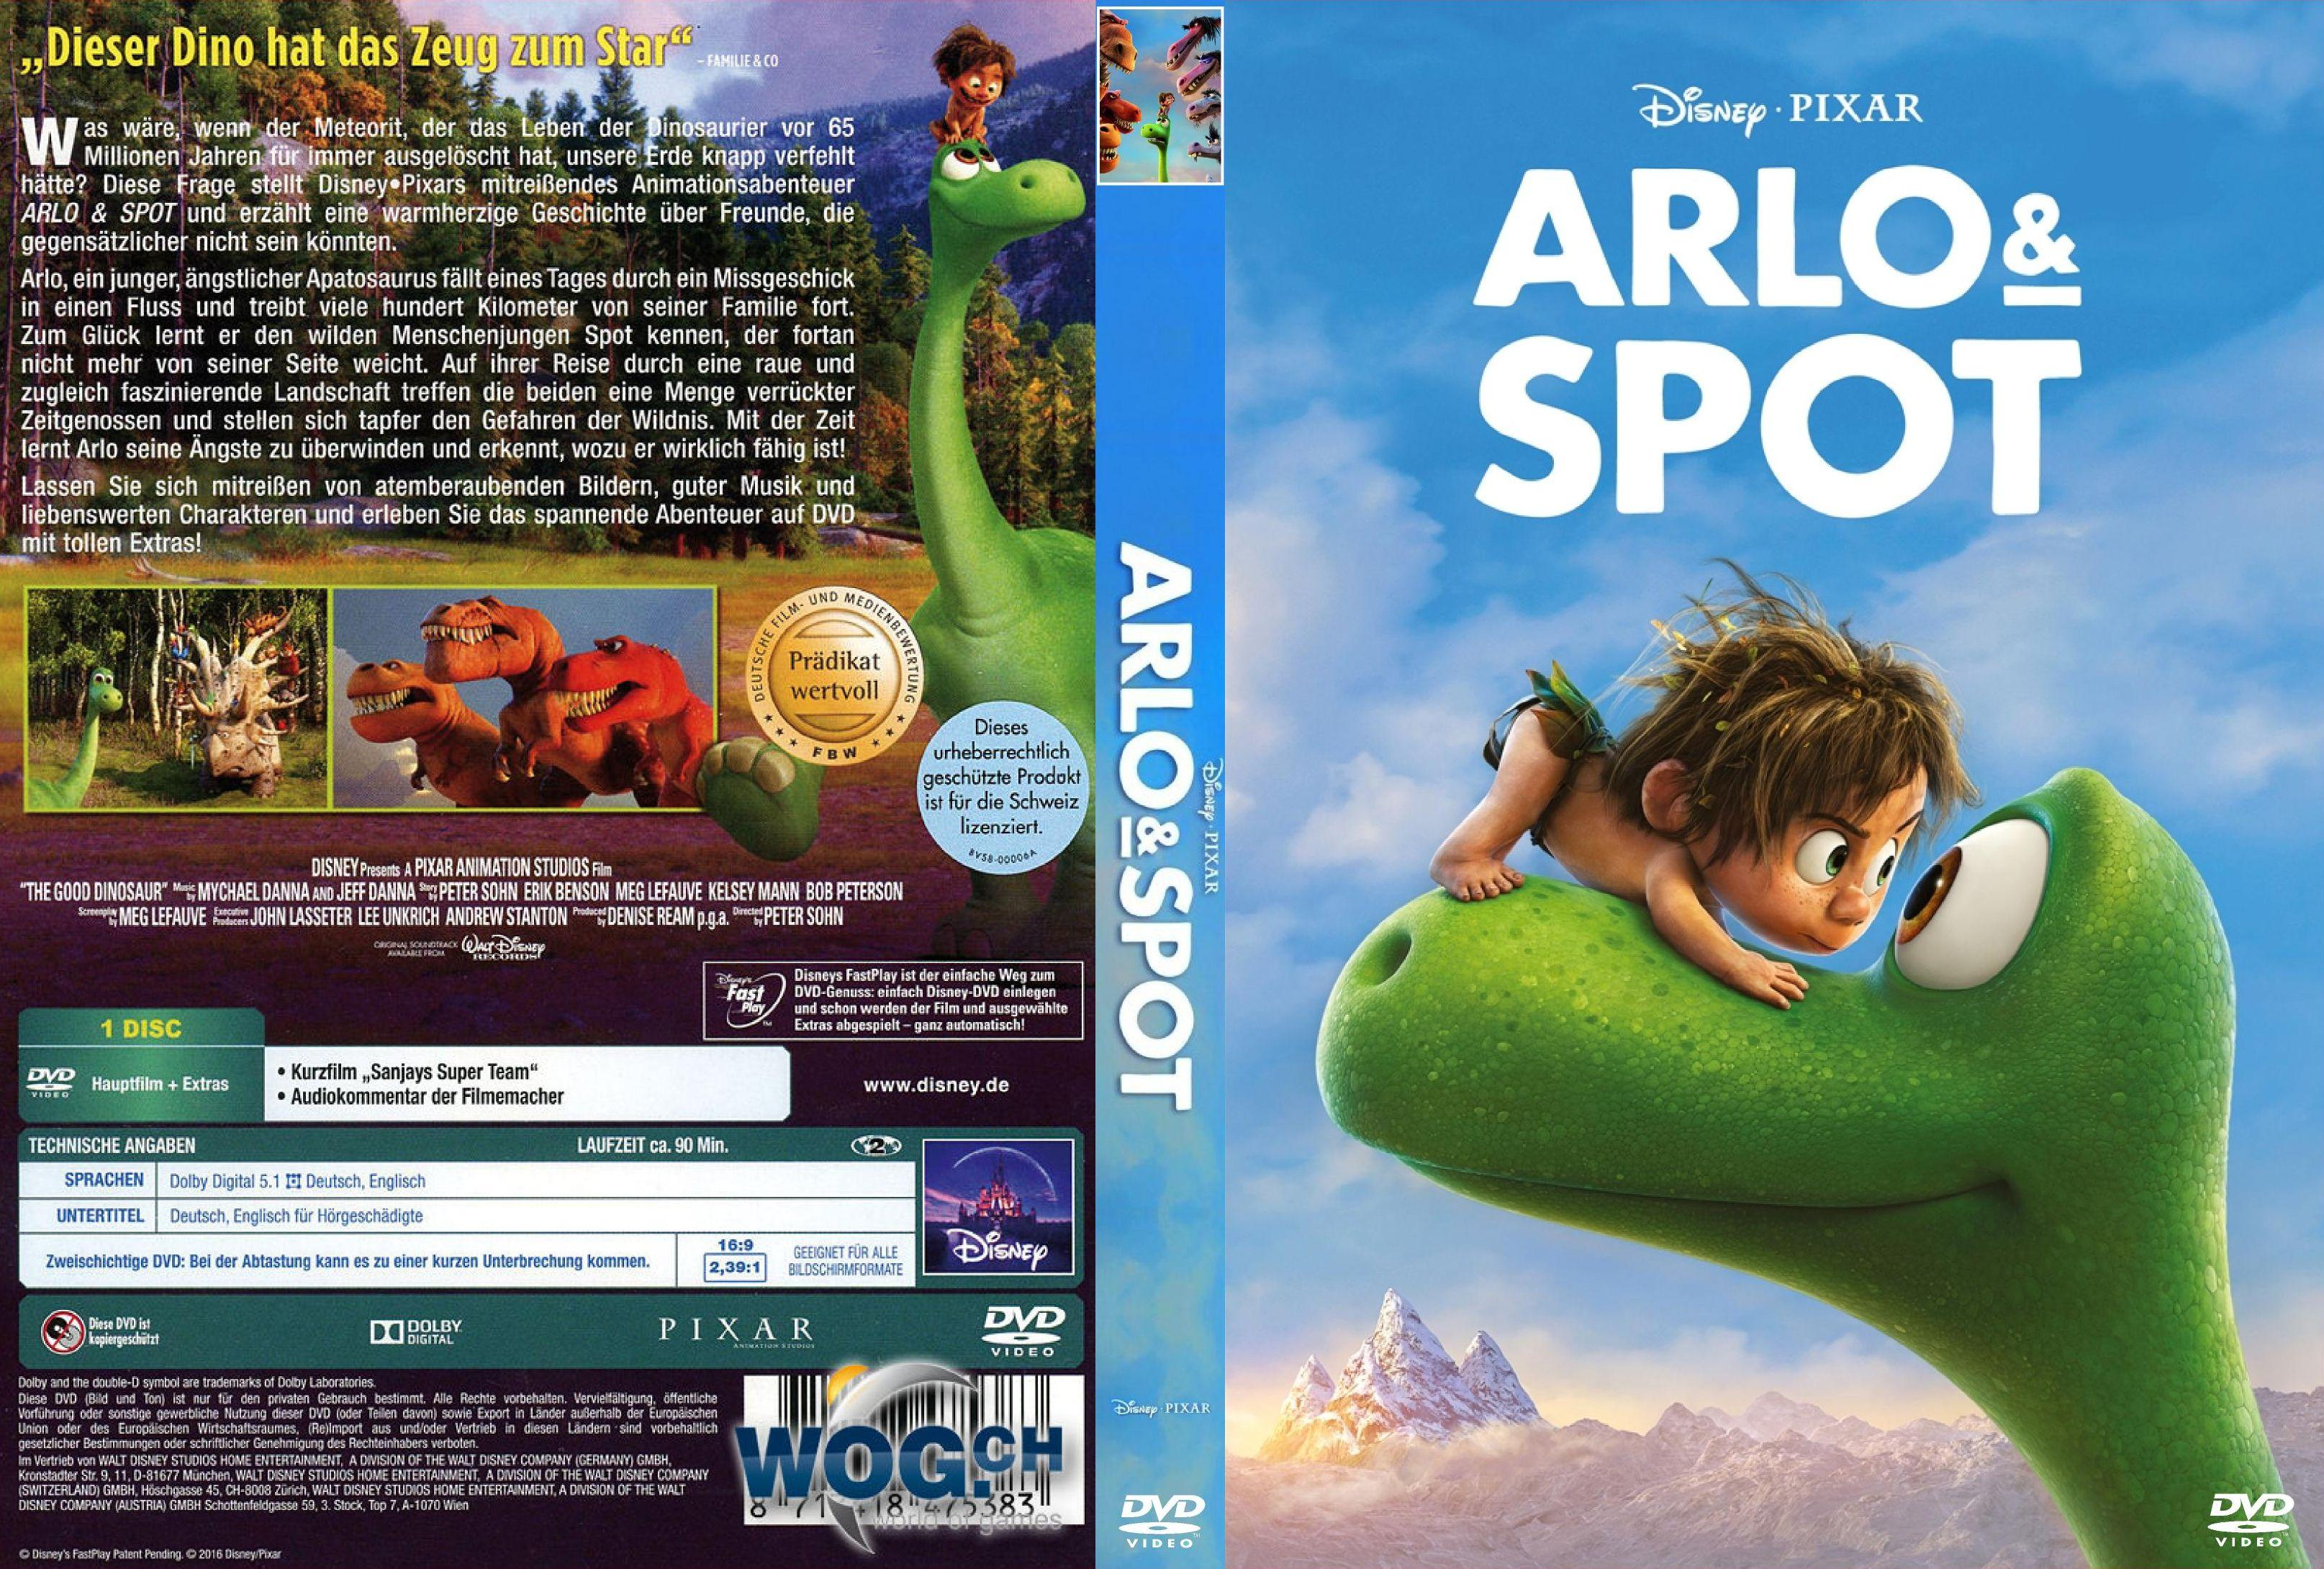 arlo spot r2 german dvd covers and labels. Black Bedroom Furniture Sets. Home Design Ideas